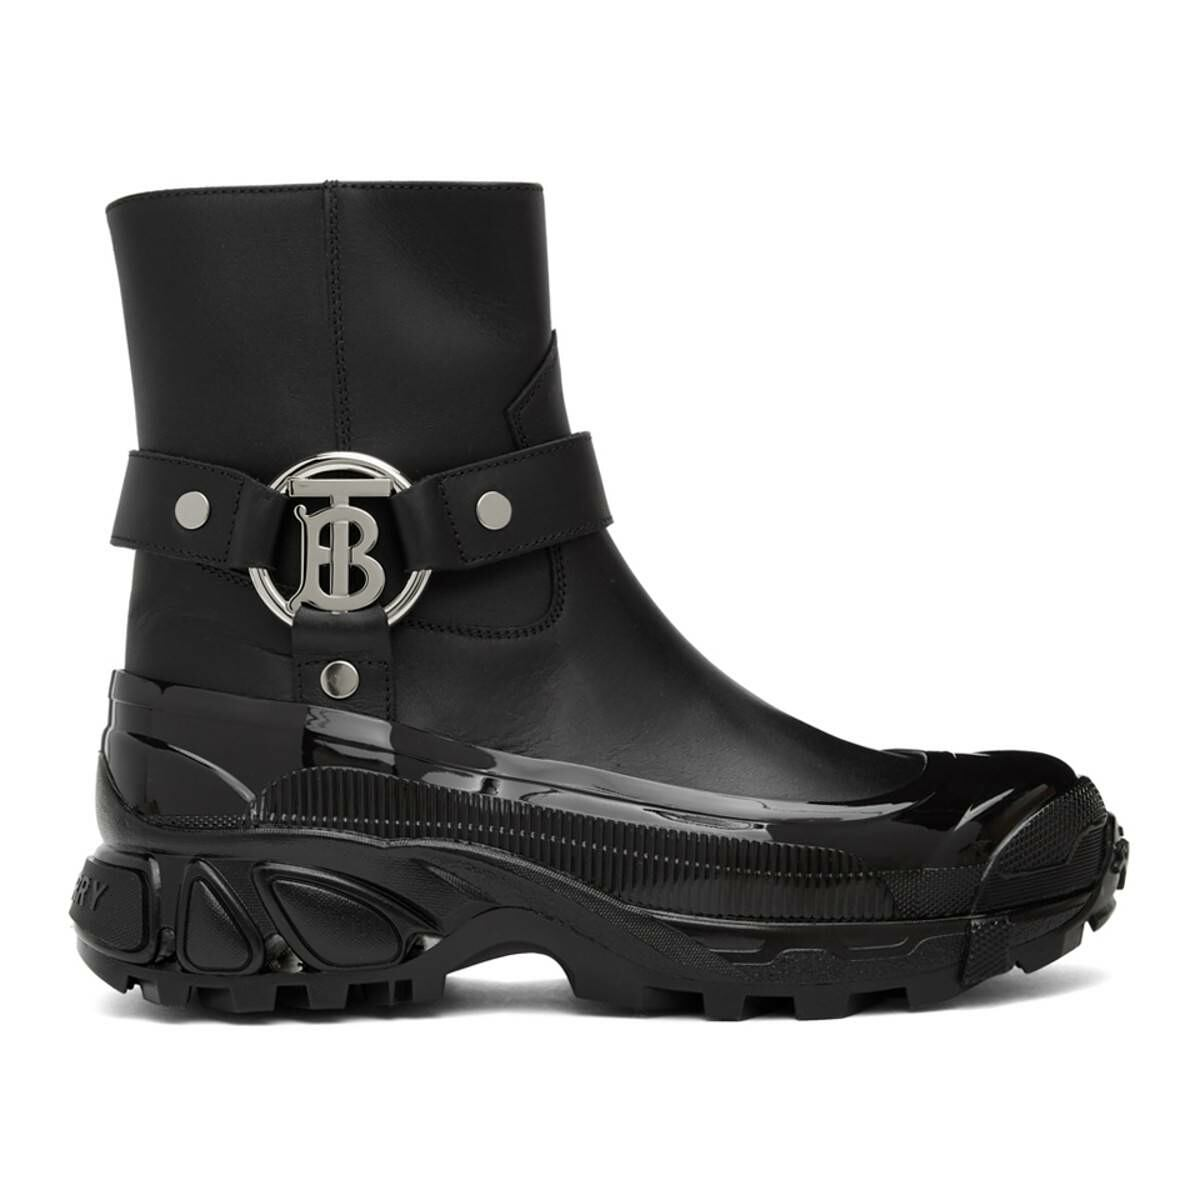 Burberry Black Mallory Boots Ssense USA WOMEN Women SHOES Womens ANKLE BOOTS